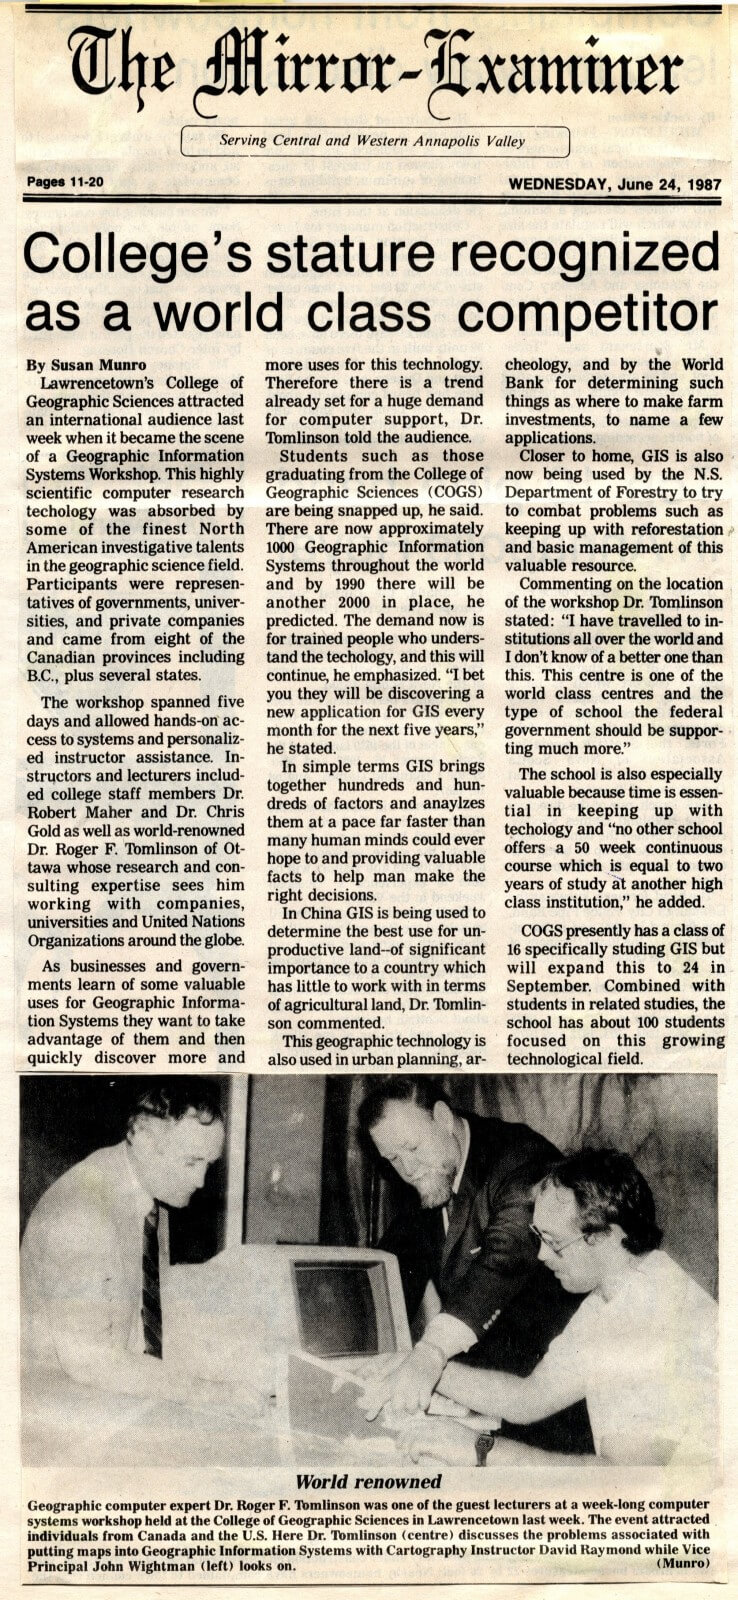 Mirror Examiner Article June 24 1987